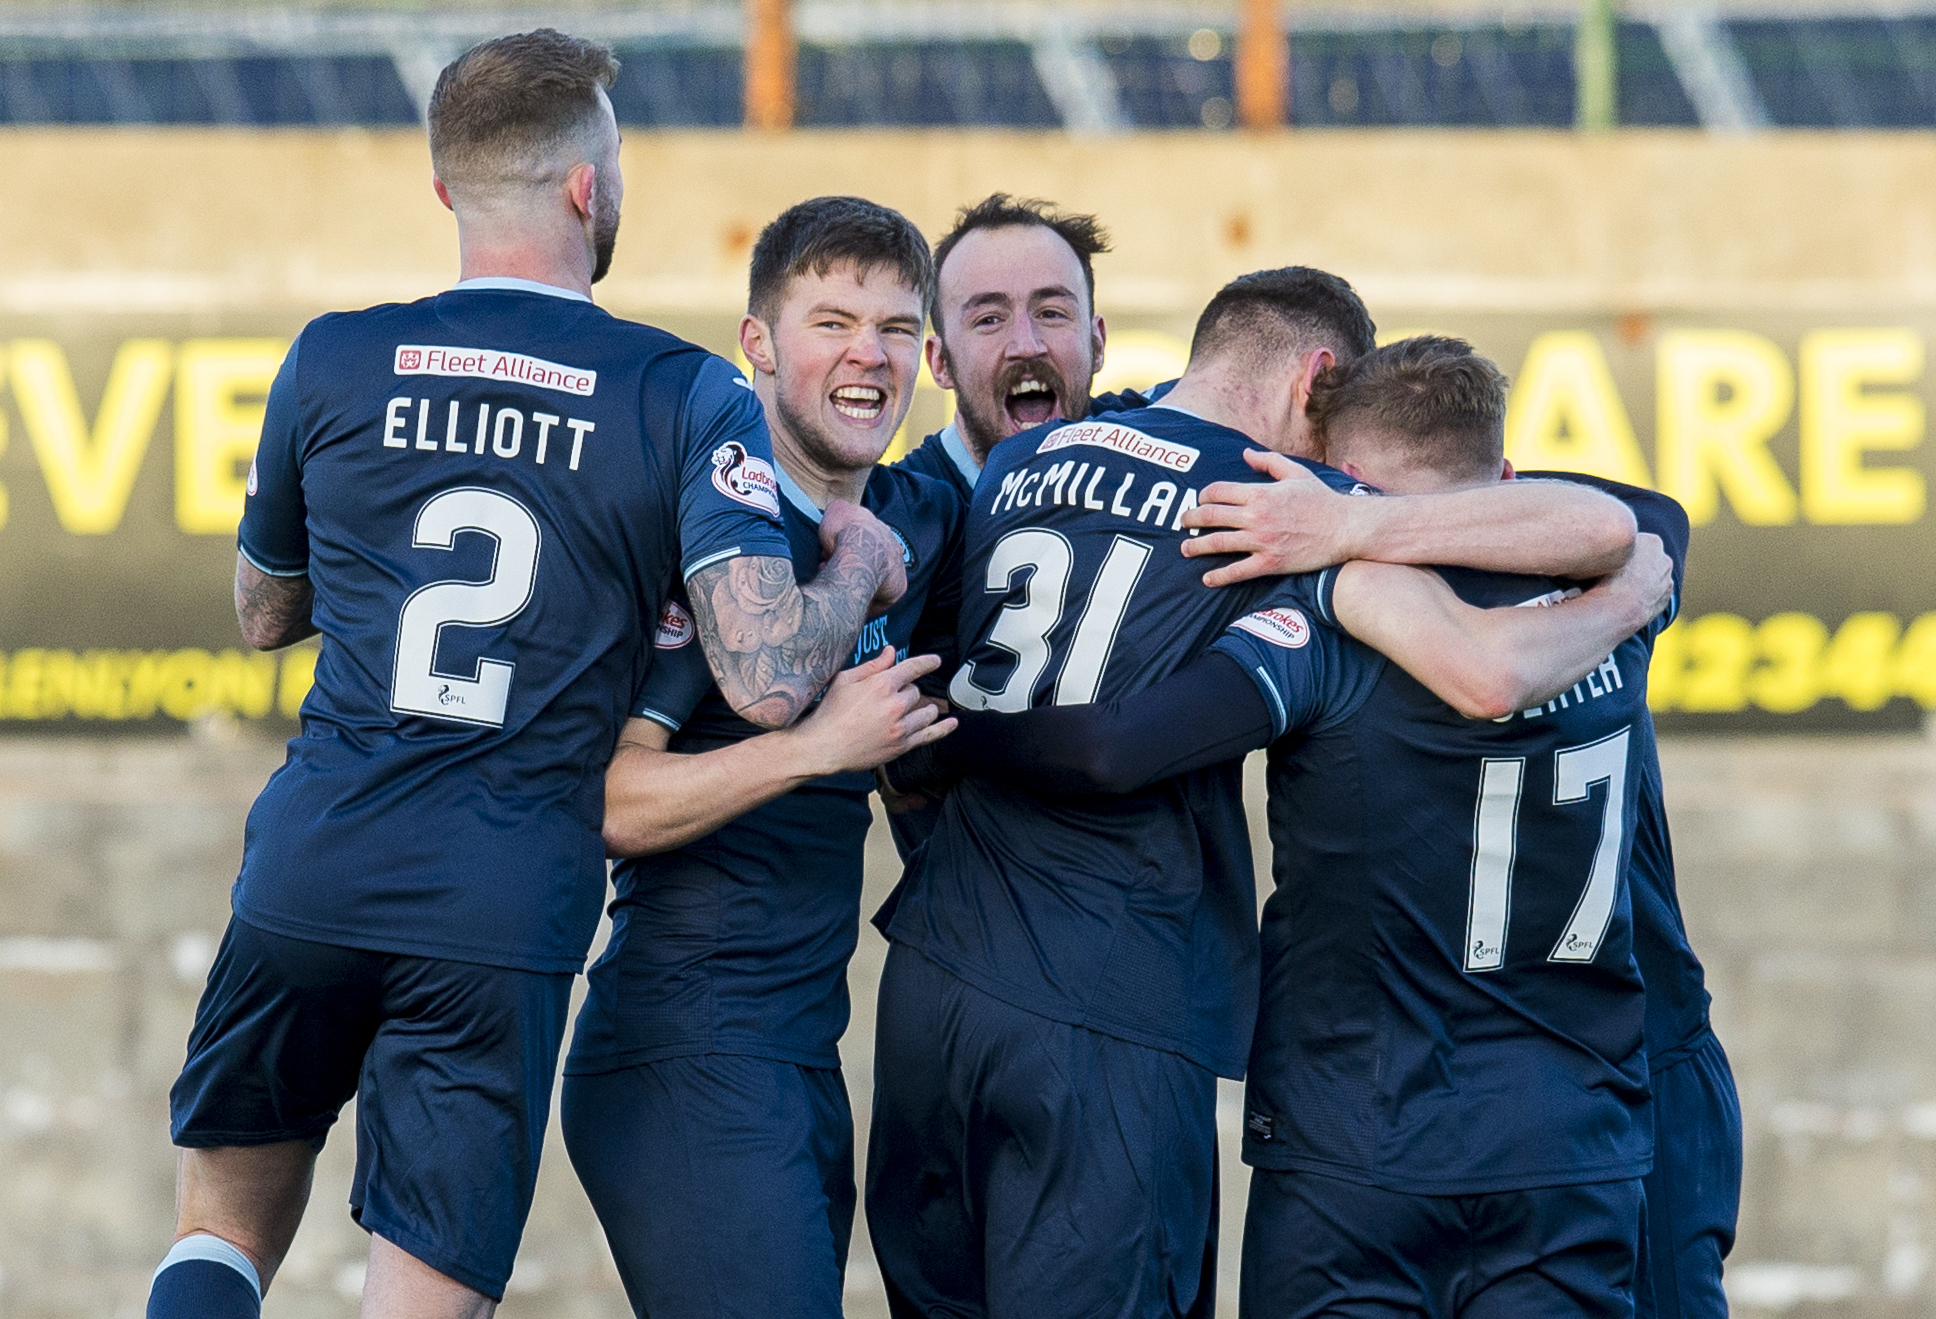 09/09/2018 SCOTTISH CUP EAST FIFE v PARTICK THISTLE (0-1) BAYVIEW STADIUM - METHIL Partick Thistle celebrate as Steven Anderson opens the scoring